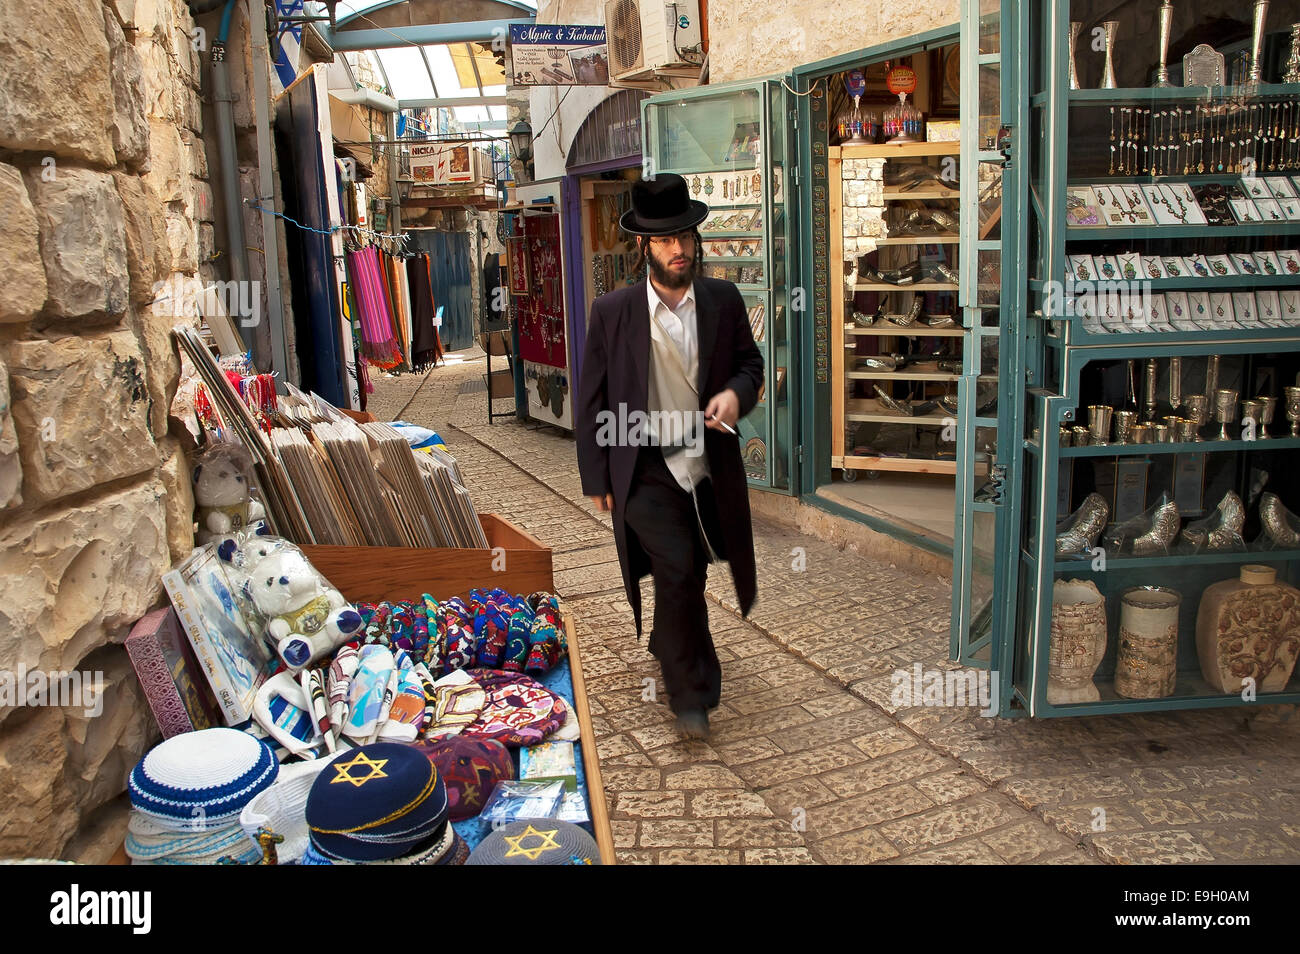 Religious men walks in Safed old city Alley - Stock Image